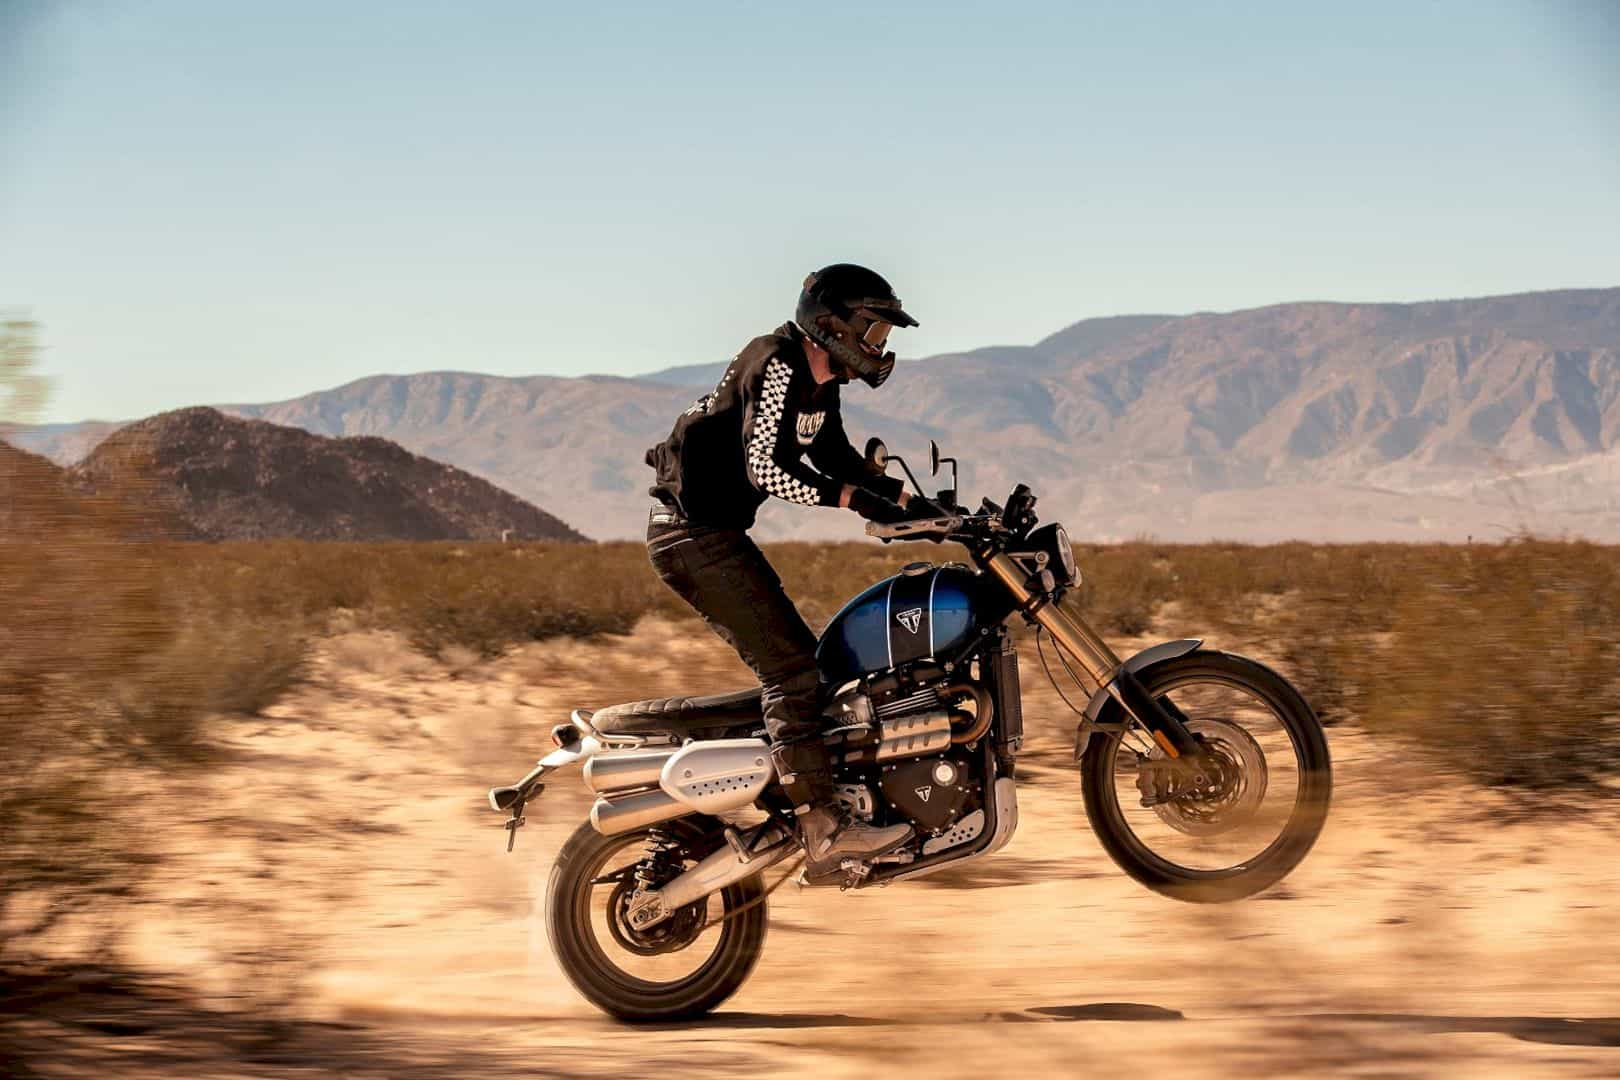 Triumph Scrambler 1200: The incredible new benchmark in scrambler capability and style